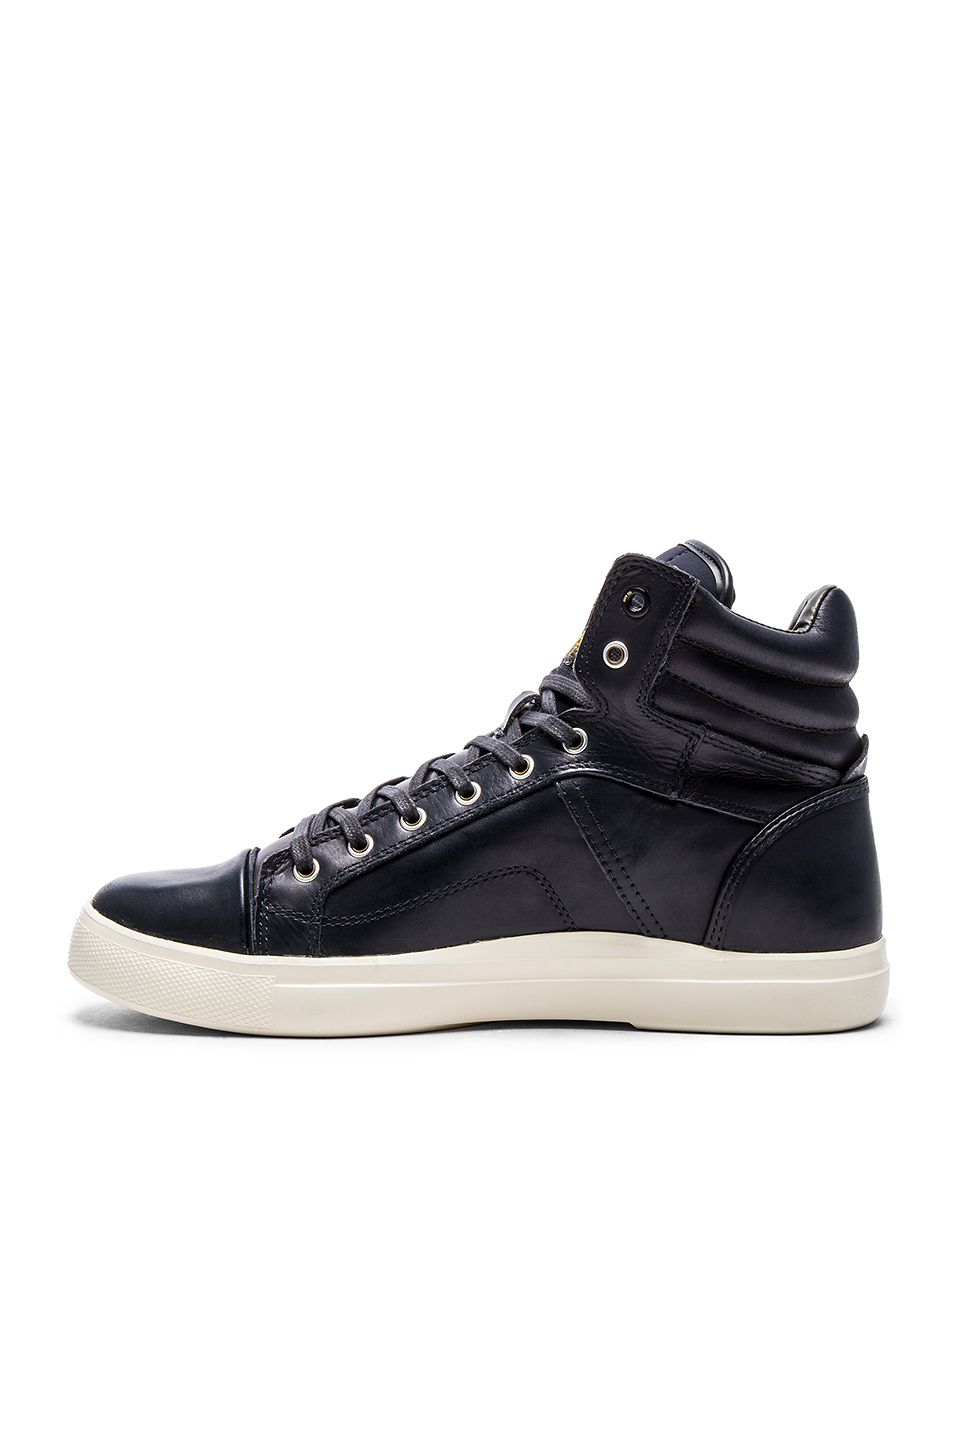 Lyst - G-Star Raw Augur Iii Kayvan Leather High-Top -3762